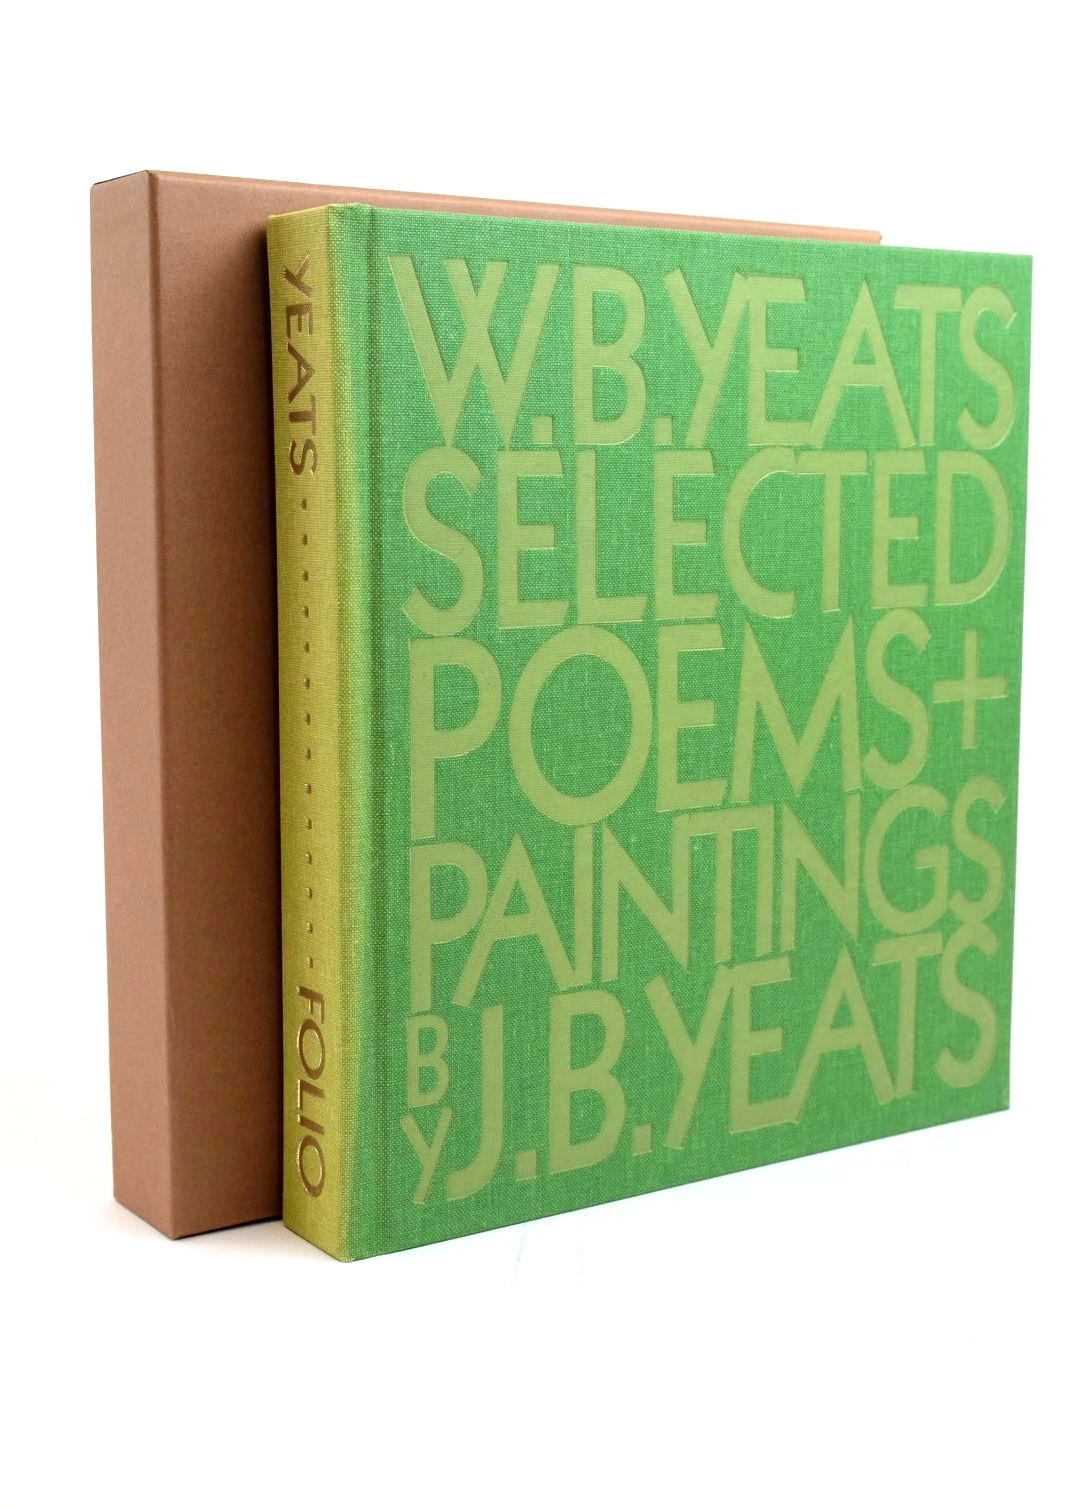 Photo of SELECTED POEMS written by Yeats, W.B. illustrated by Yeats, Jack B. published by Folio Society (STOCK CODE: 1321386)  for sale by Stella & Rose's Books